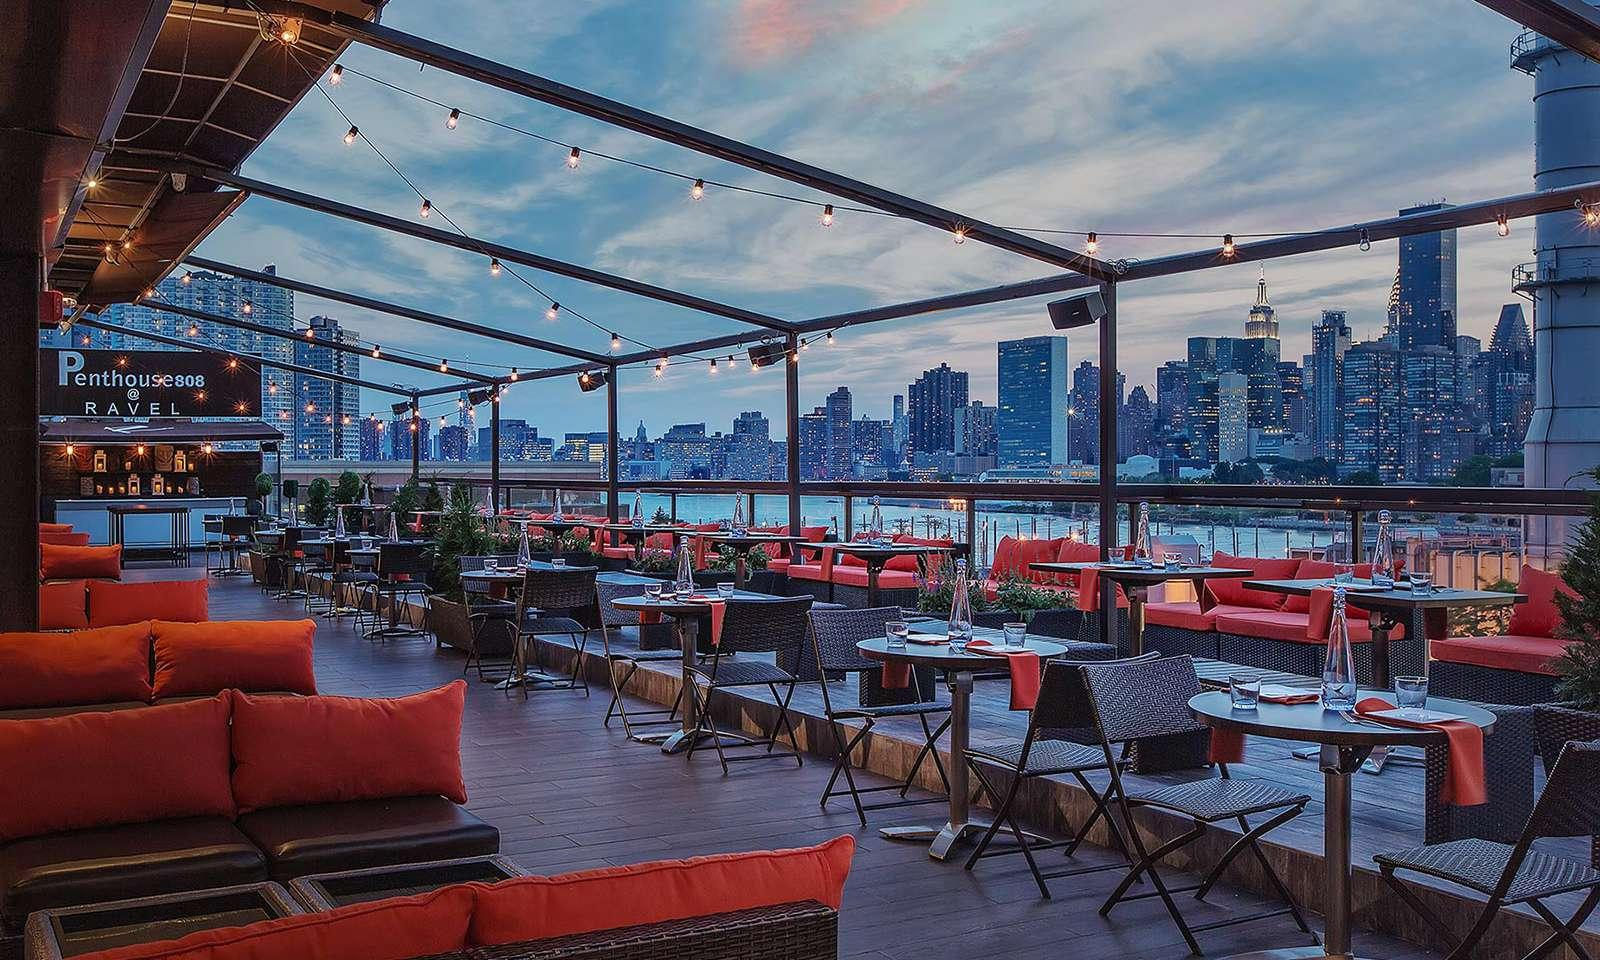 Penthouse808 Rooftop Bar and Lounge   Ultimate View of the ...